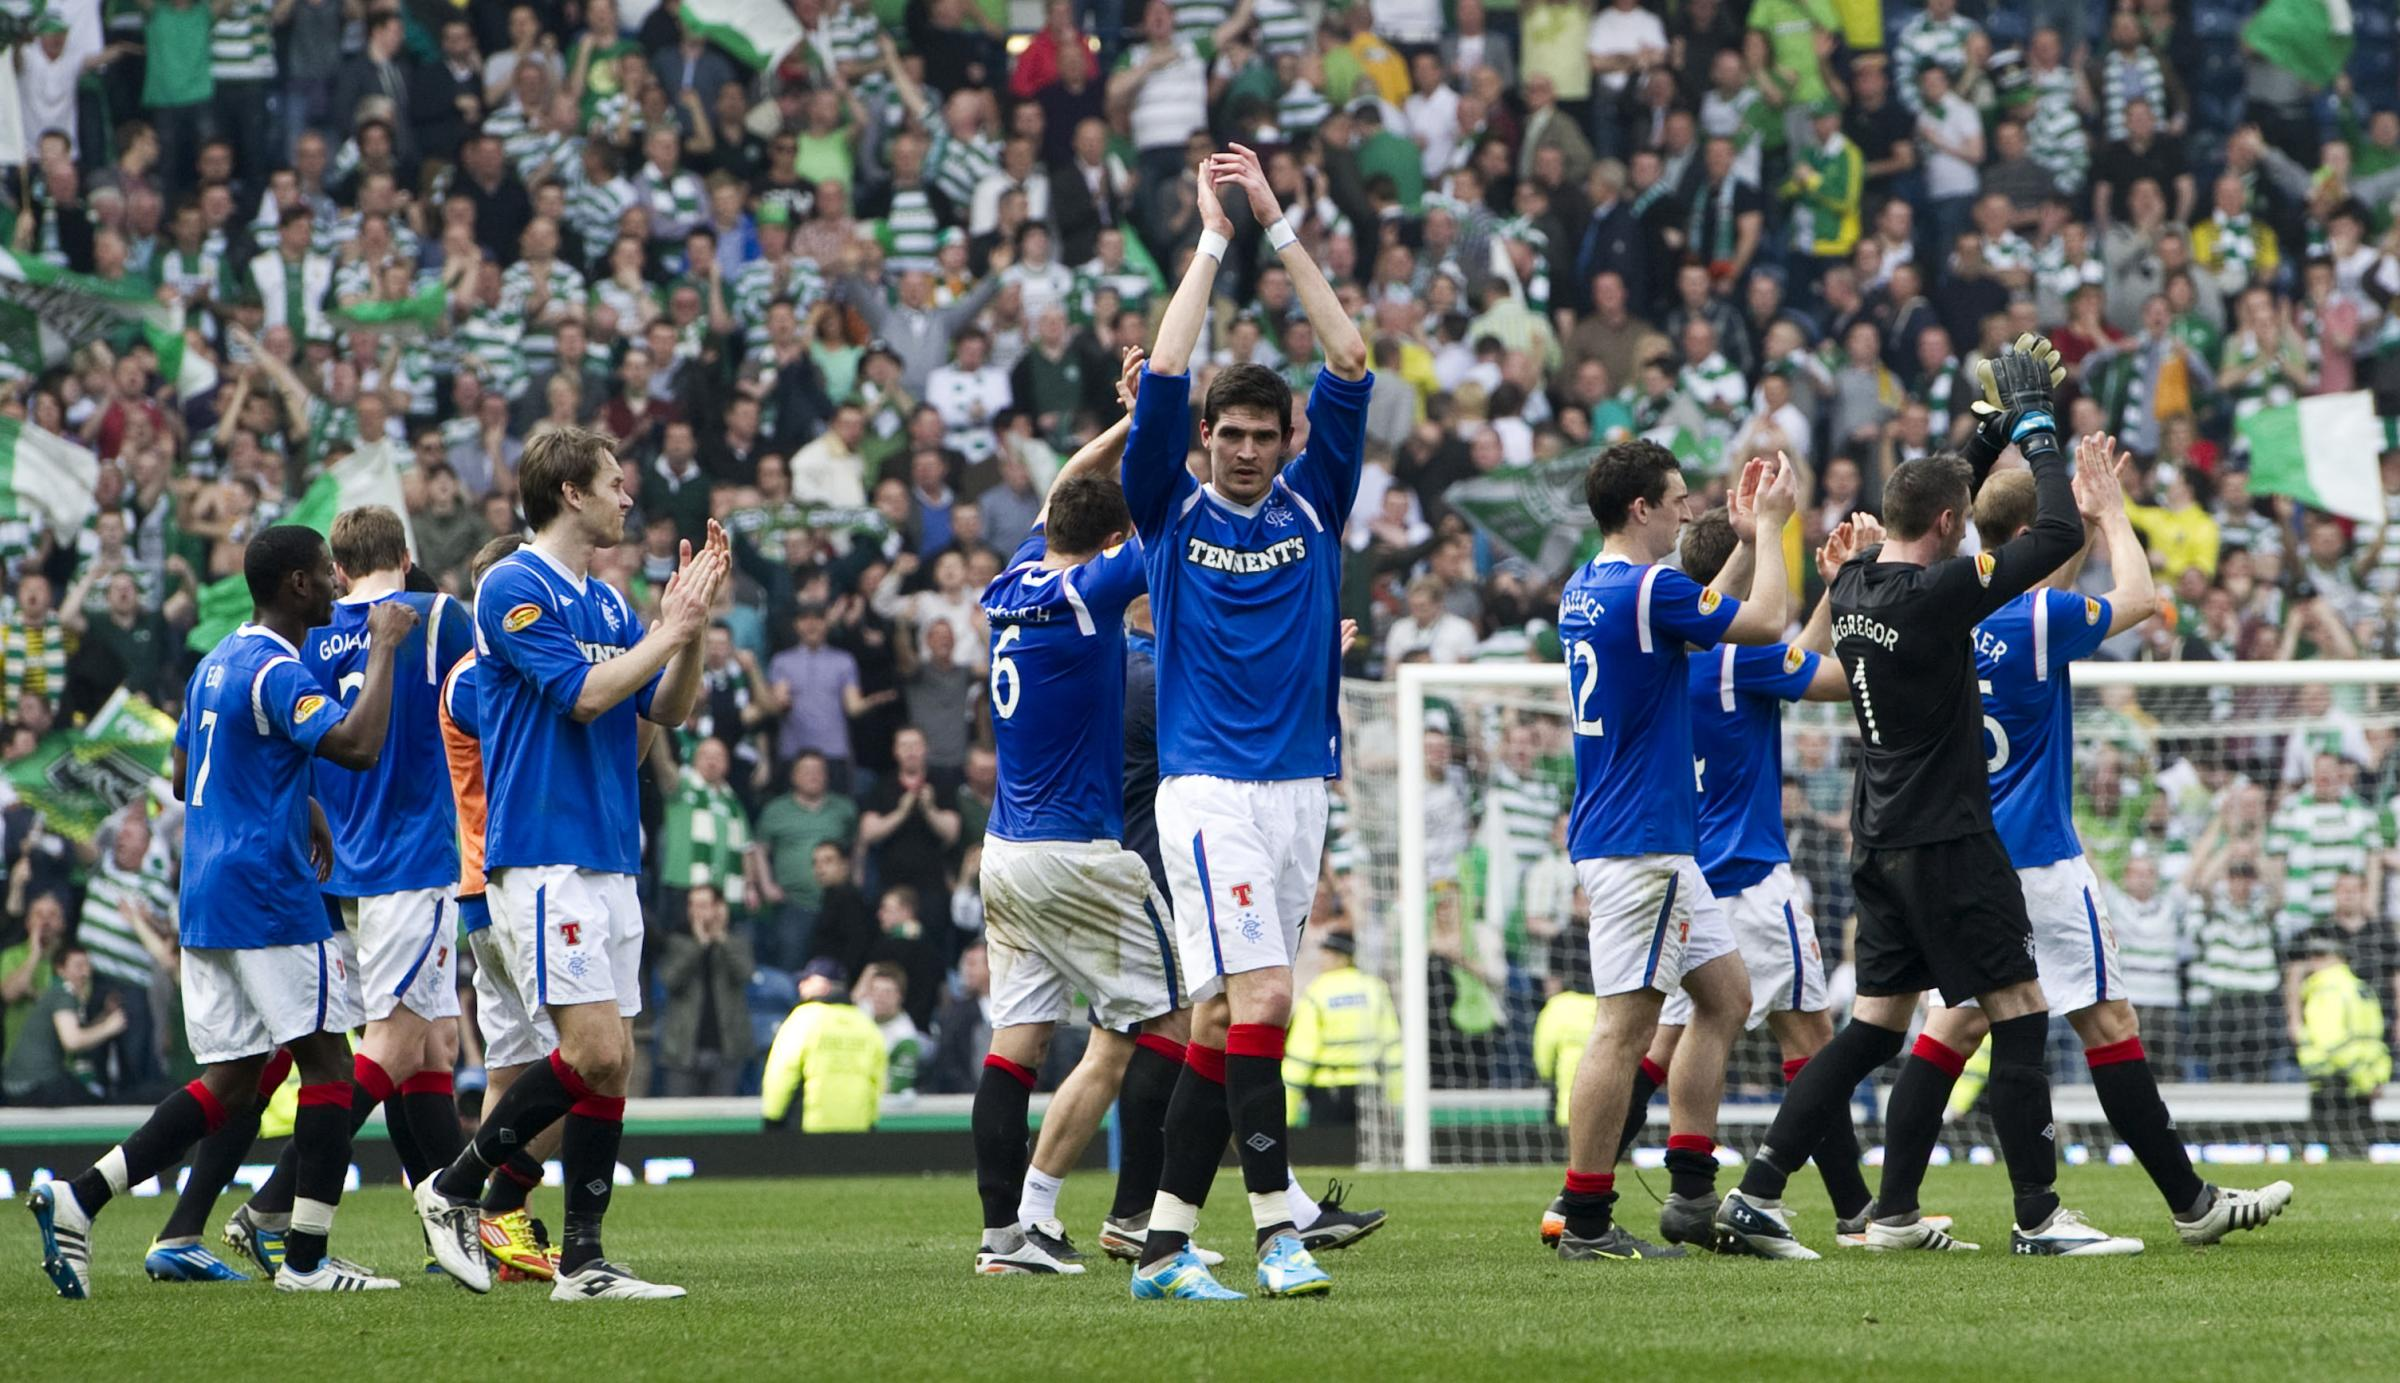 Rangers 1 Celtic 0: Gerrard's men win Old Firm derby